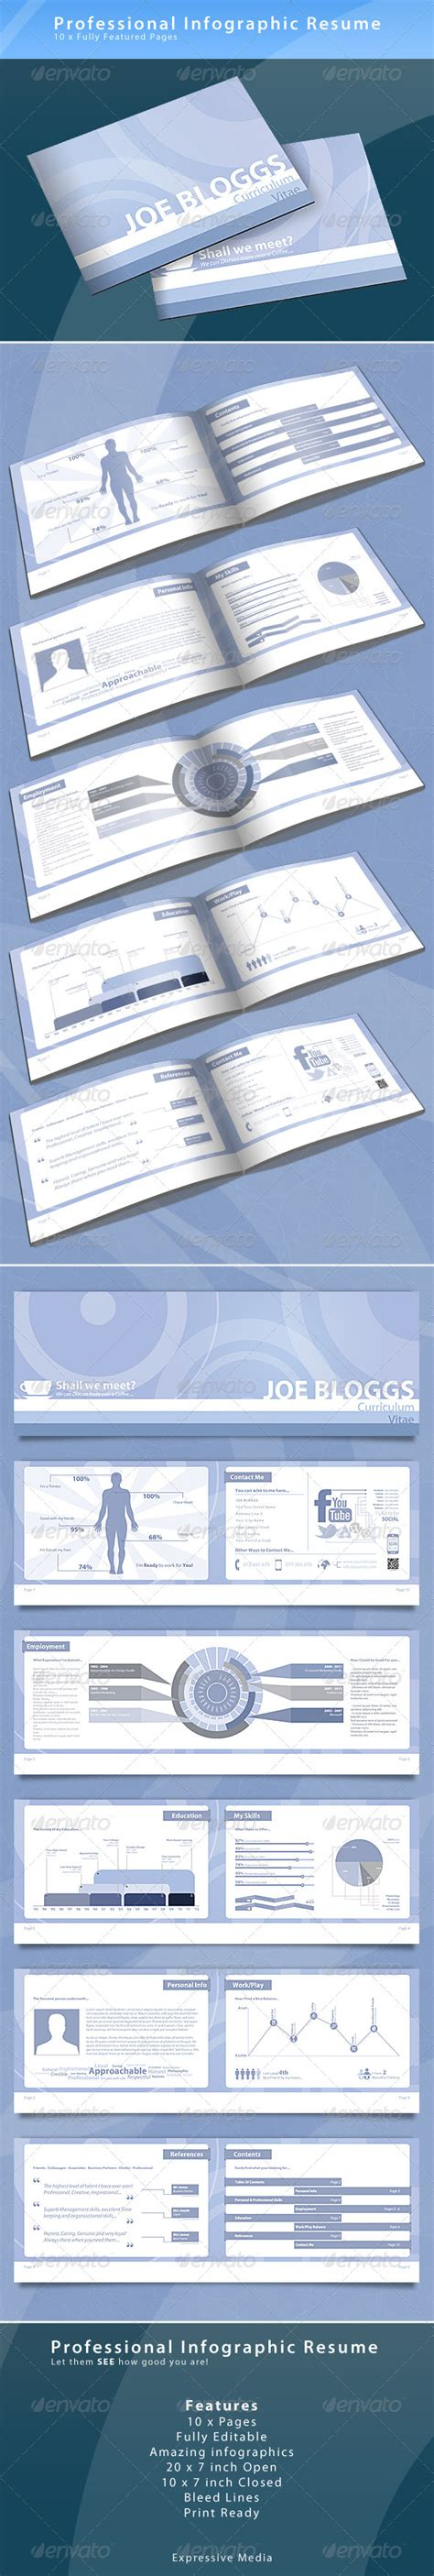 infographic resume booklet graphicriver